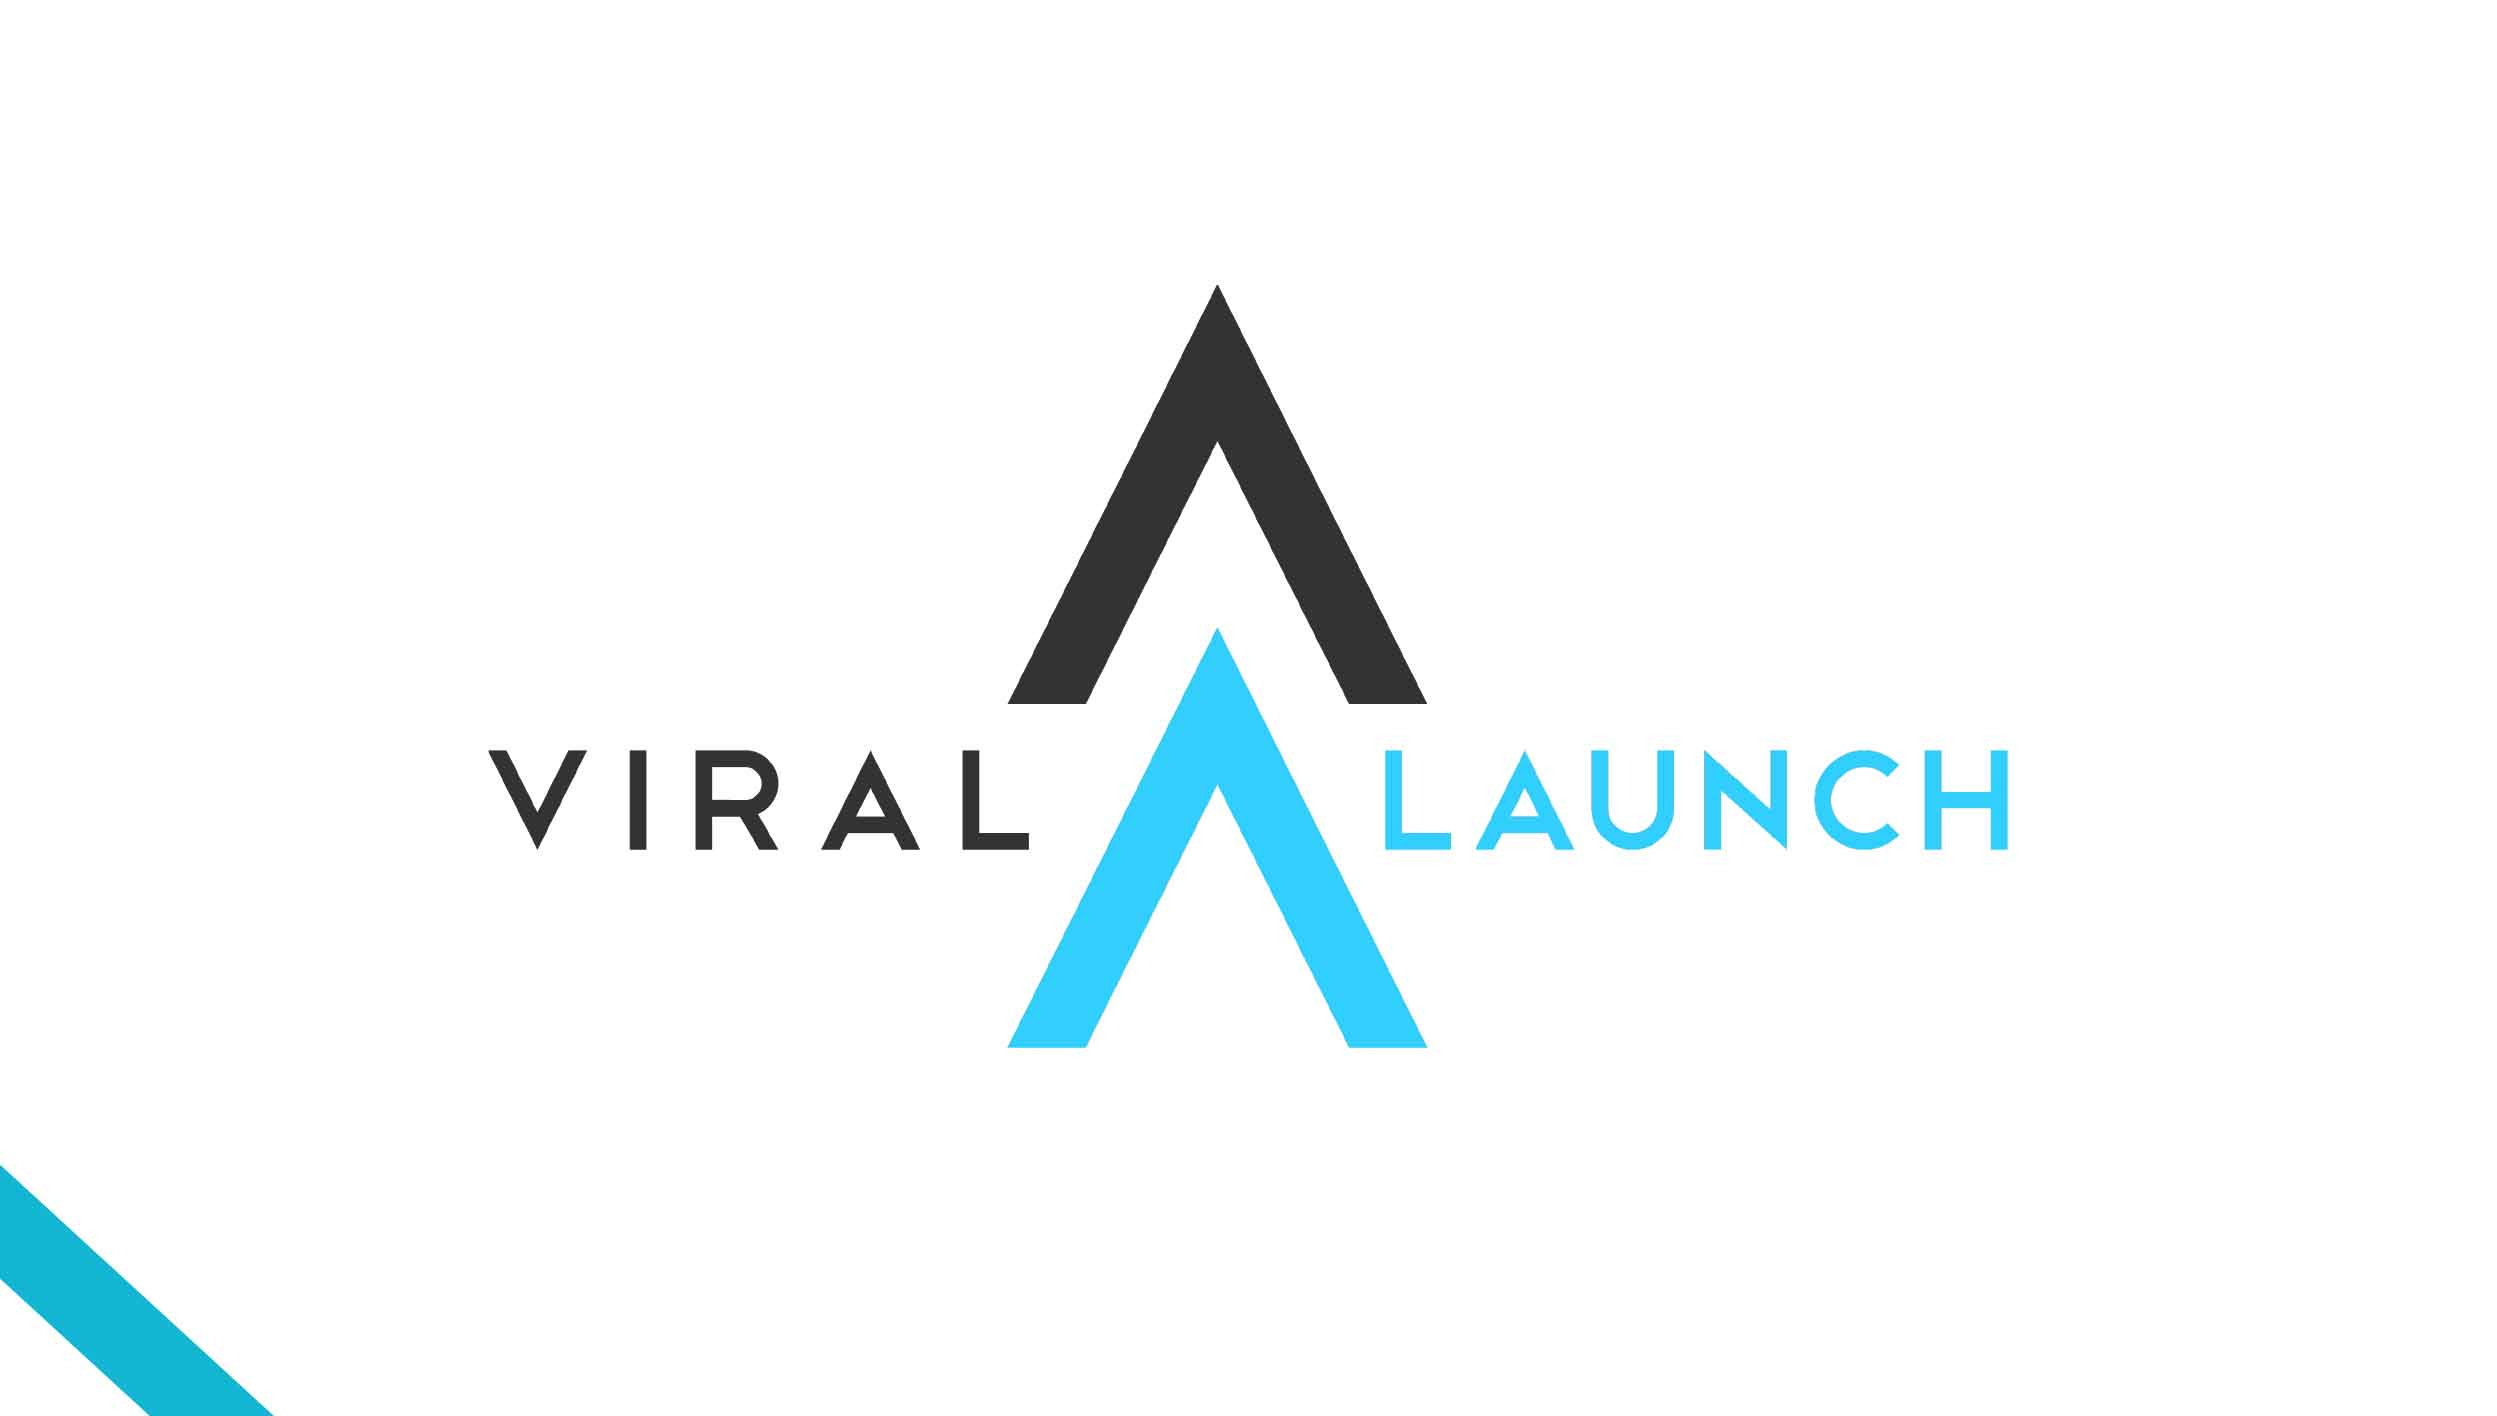 viral launch group buy